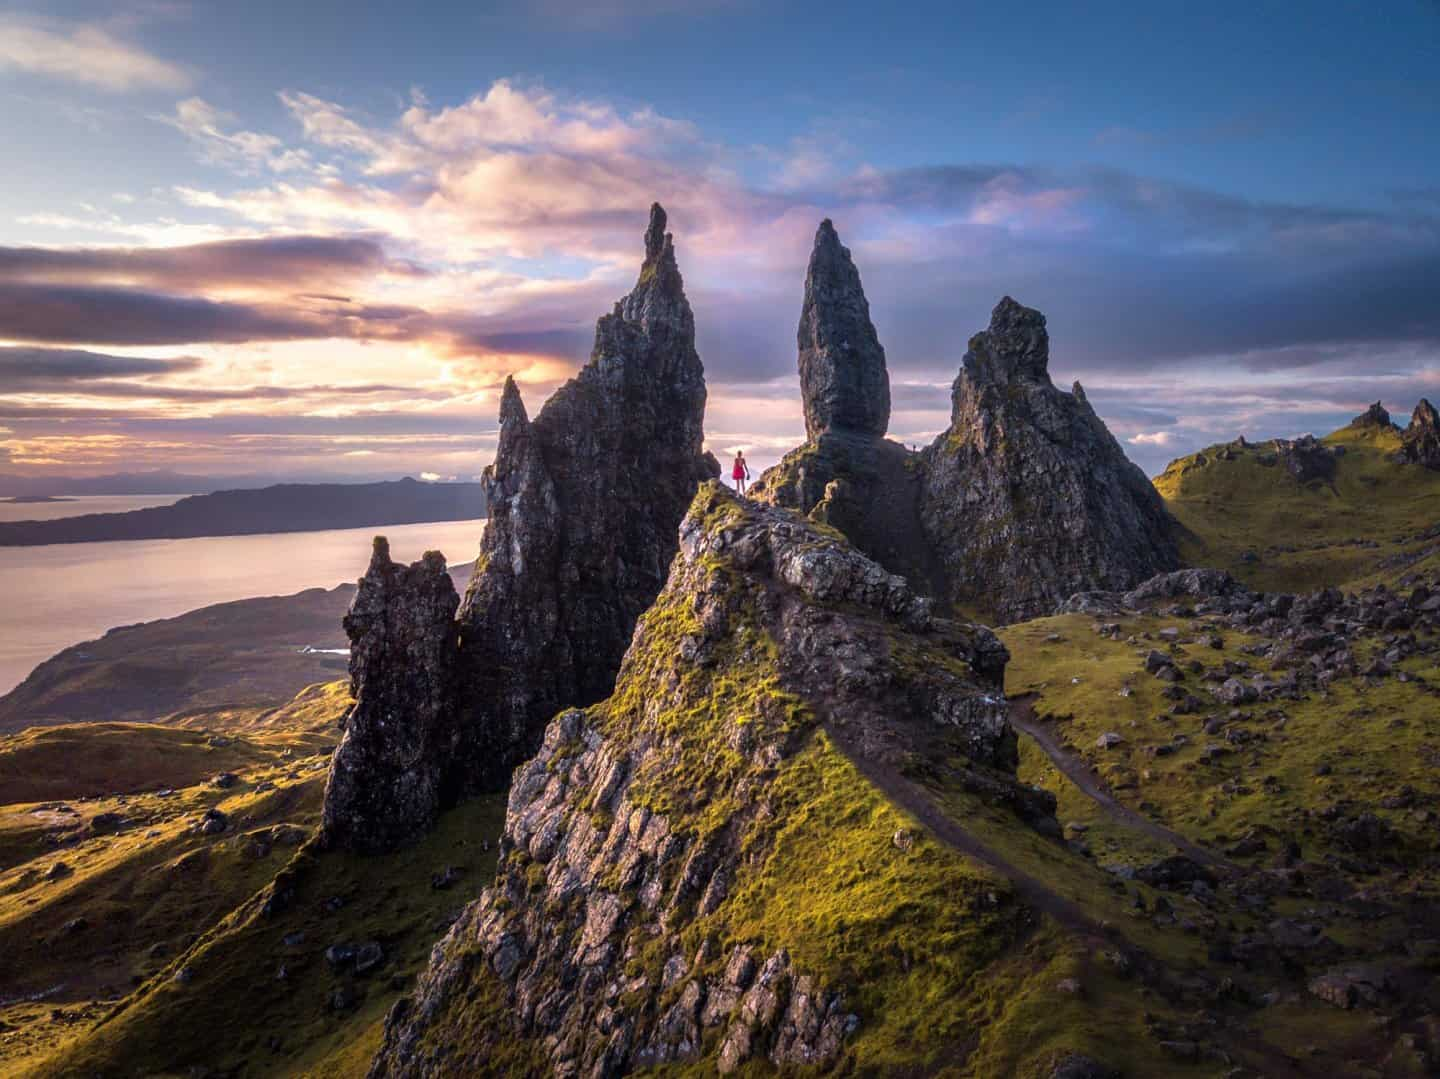 No Isle of Skye 2 day tour from Edinburgh itinerary would be complete without sunrise at The Old Man of Storr.